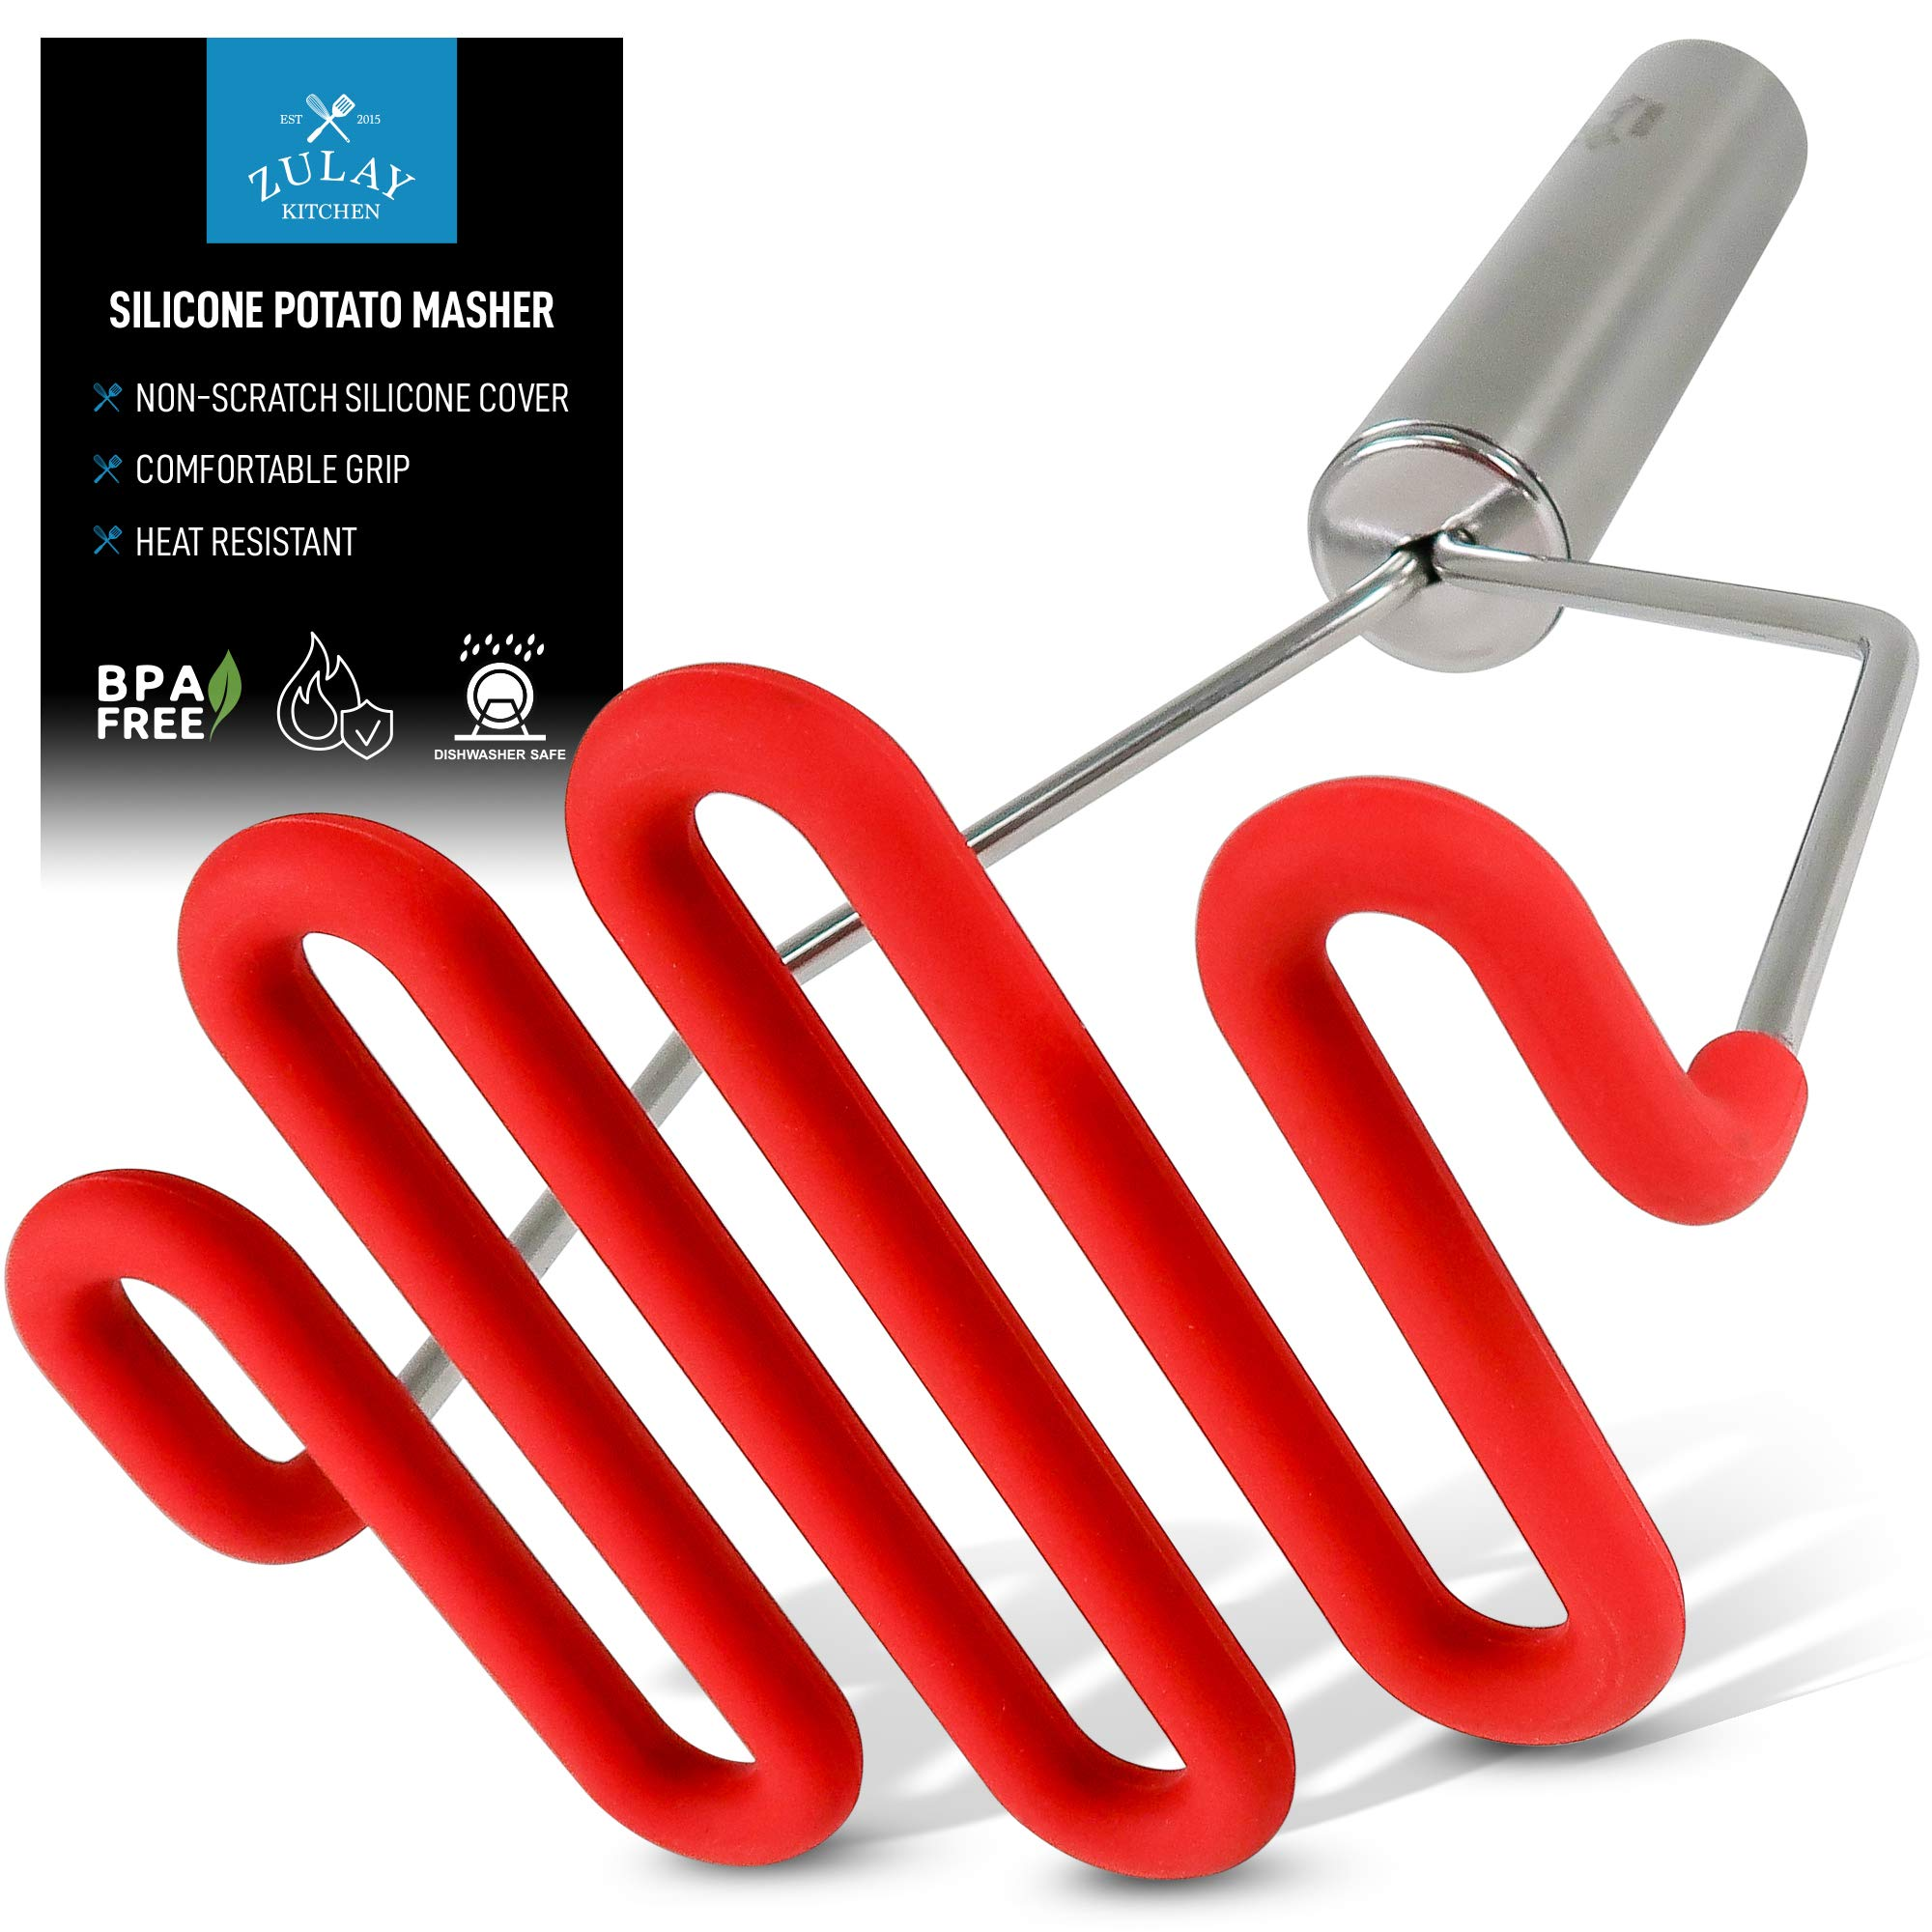 Zulay Potato Masher with Premium Silicone-Coated Stainless-Steel Design, Protects Non-Scratch Cookware for Smooth Mashed Potatoes, Vegetables and Fruits - Versatile Masher Hand Tool & Potato Smasher by Zulay Kitchen